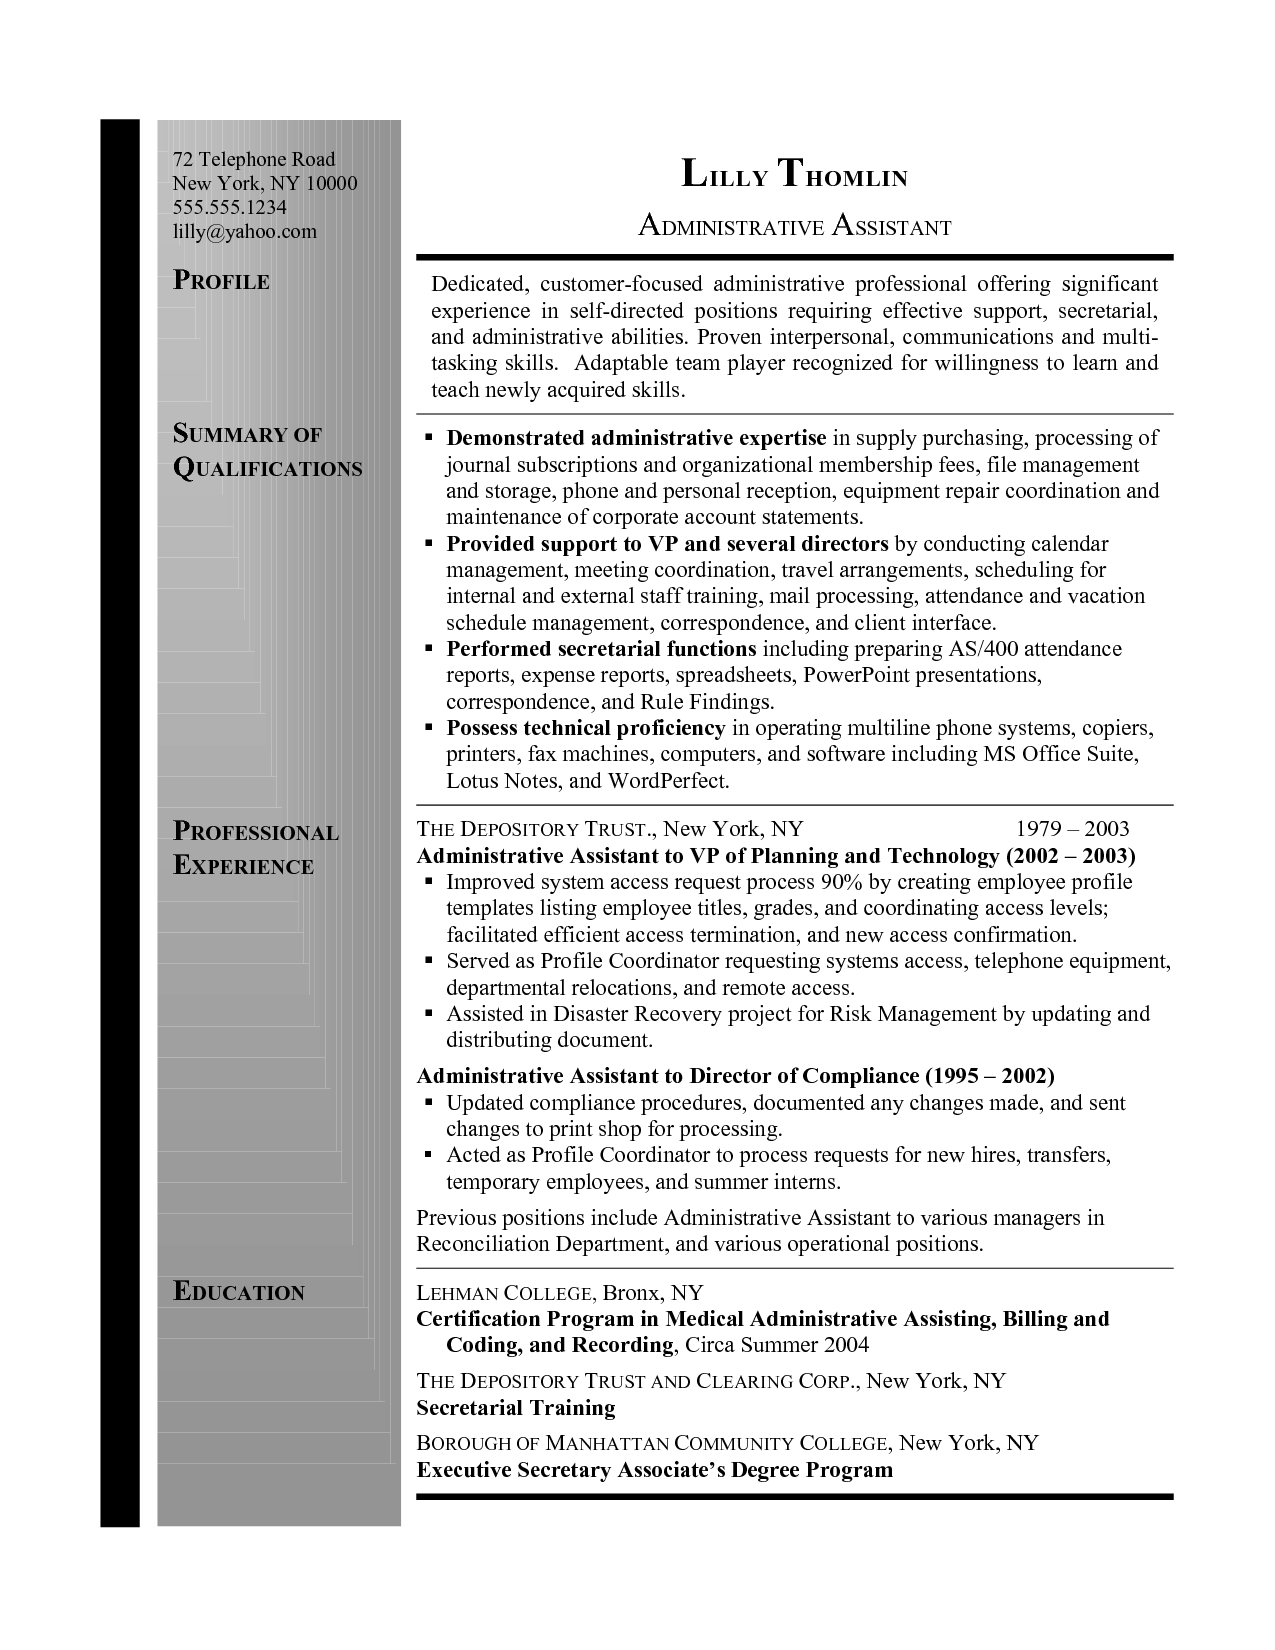 professional summary resume example for administrative assistant